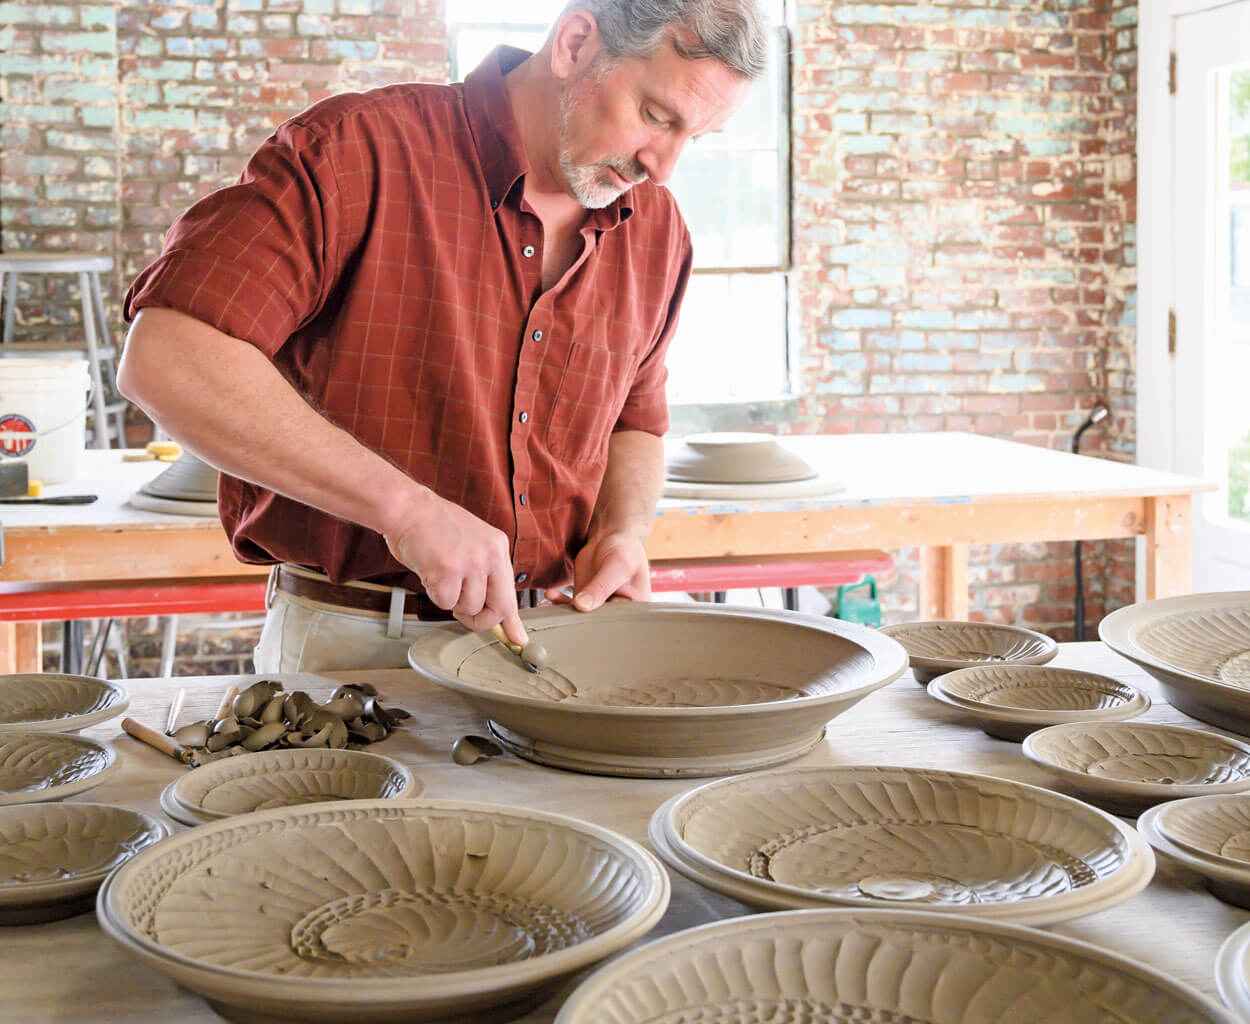 Image of North Carolina clay artist, Hamilton Williams, carving a platter from the new Nautilus Collection.